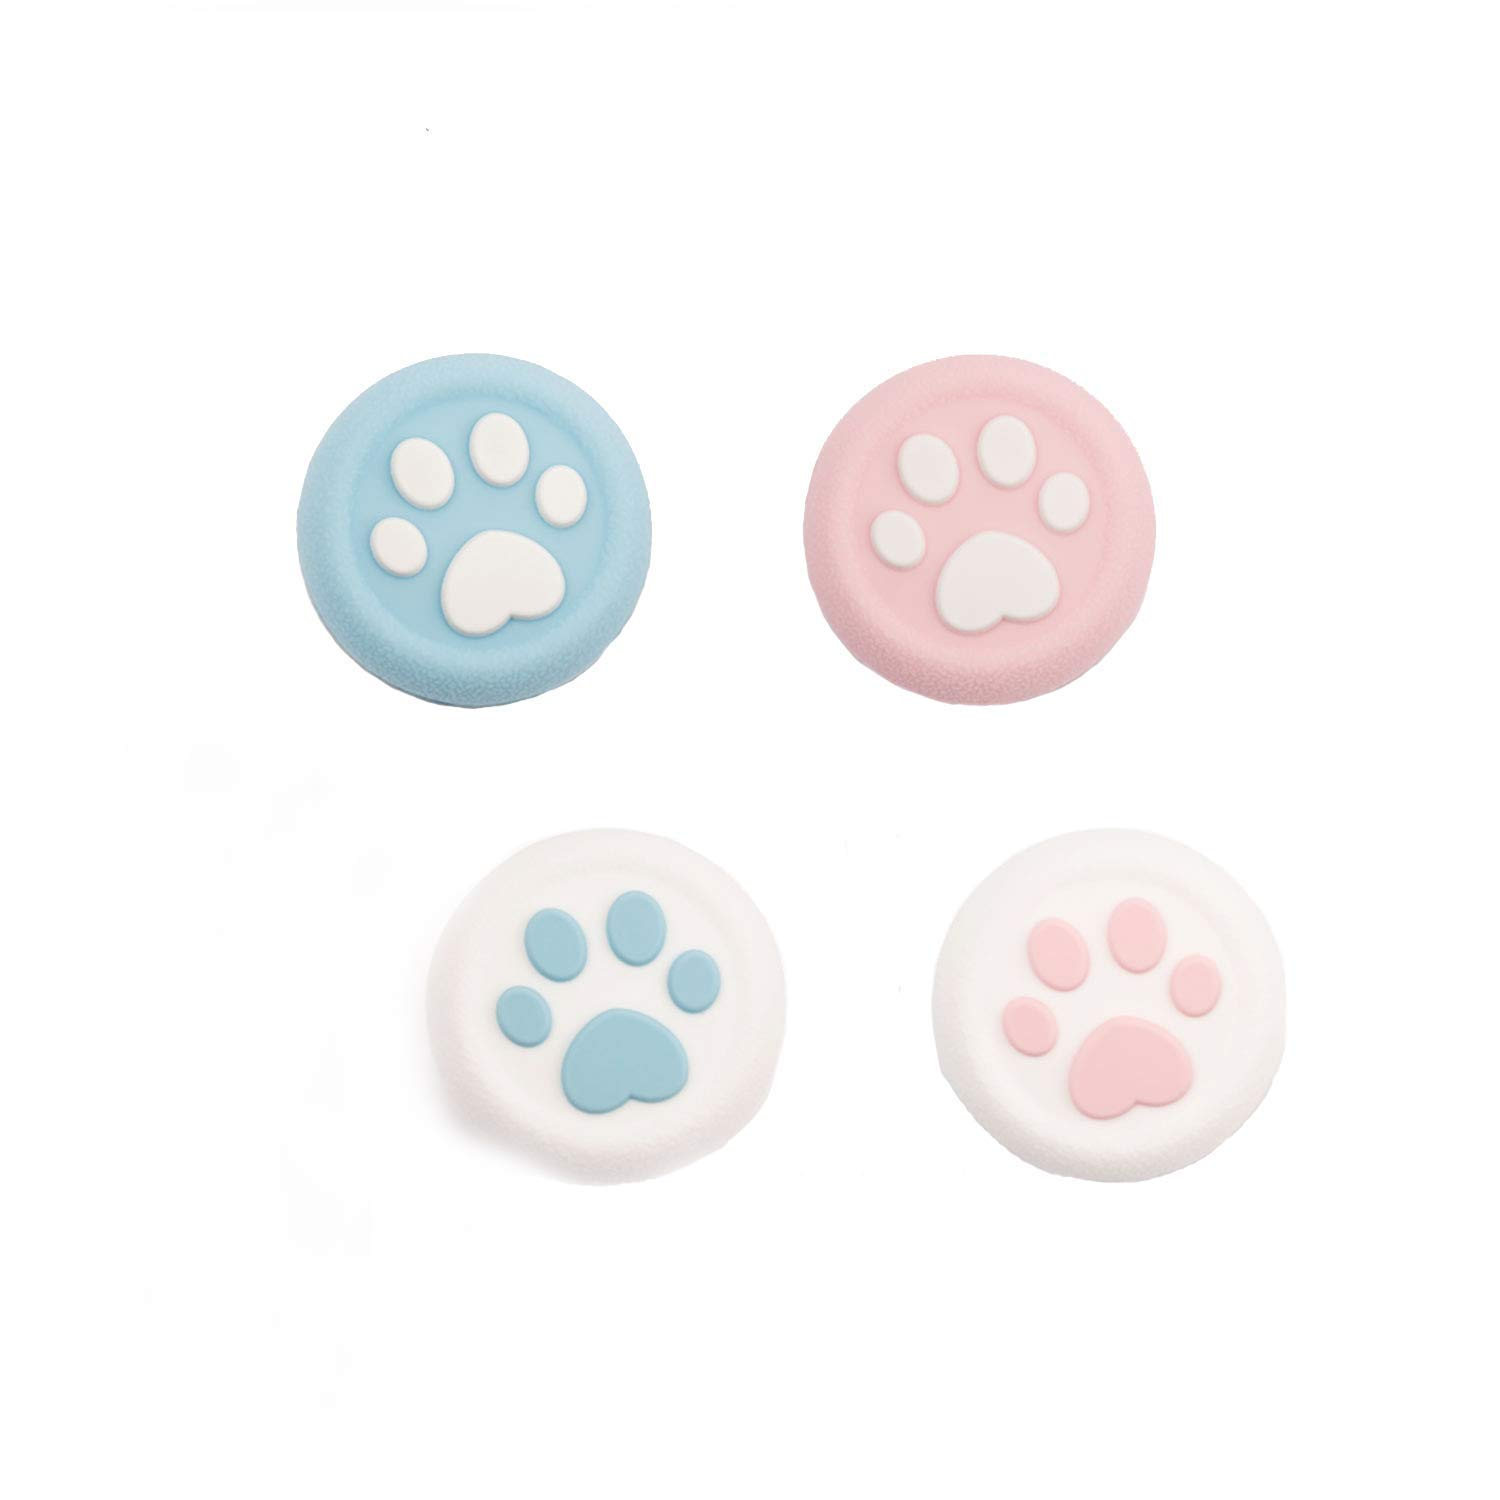 Geekshare 4Pcs Switch Paw Thumb Grip Set JoystickCaps for Switch Pro PS4 Controller Game AccessoriesThumbstick Button by Geekshare